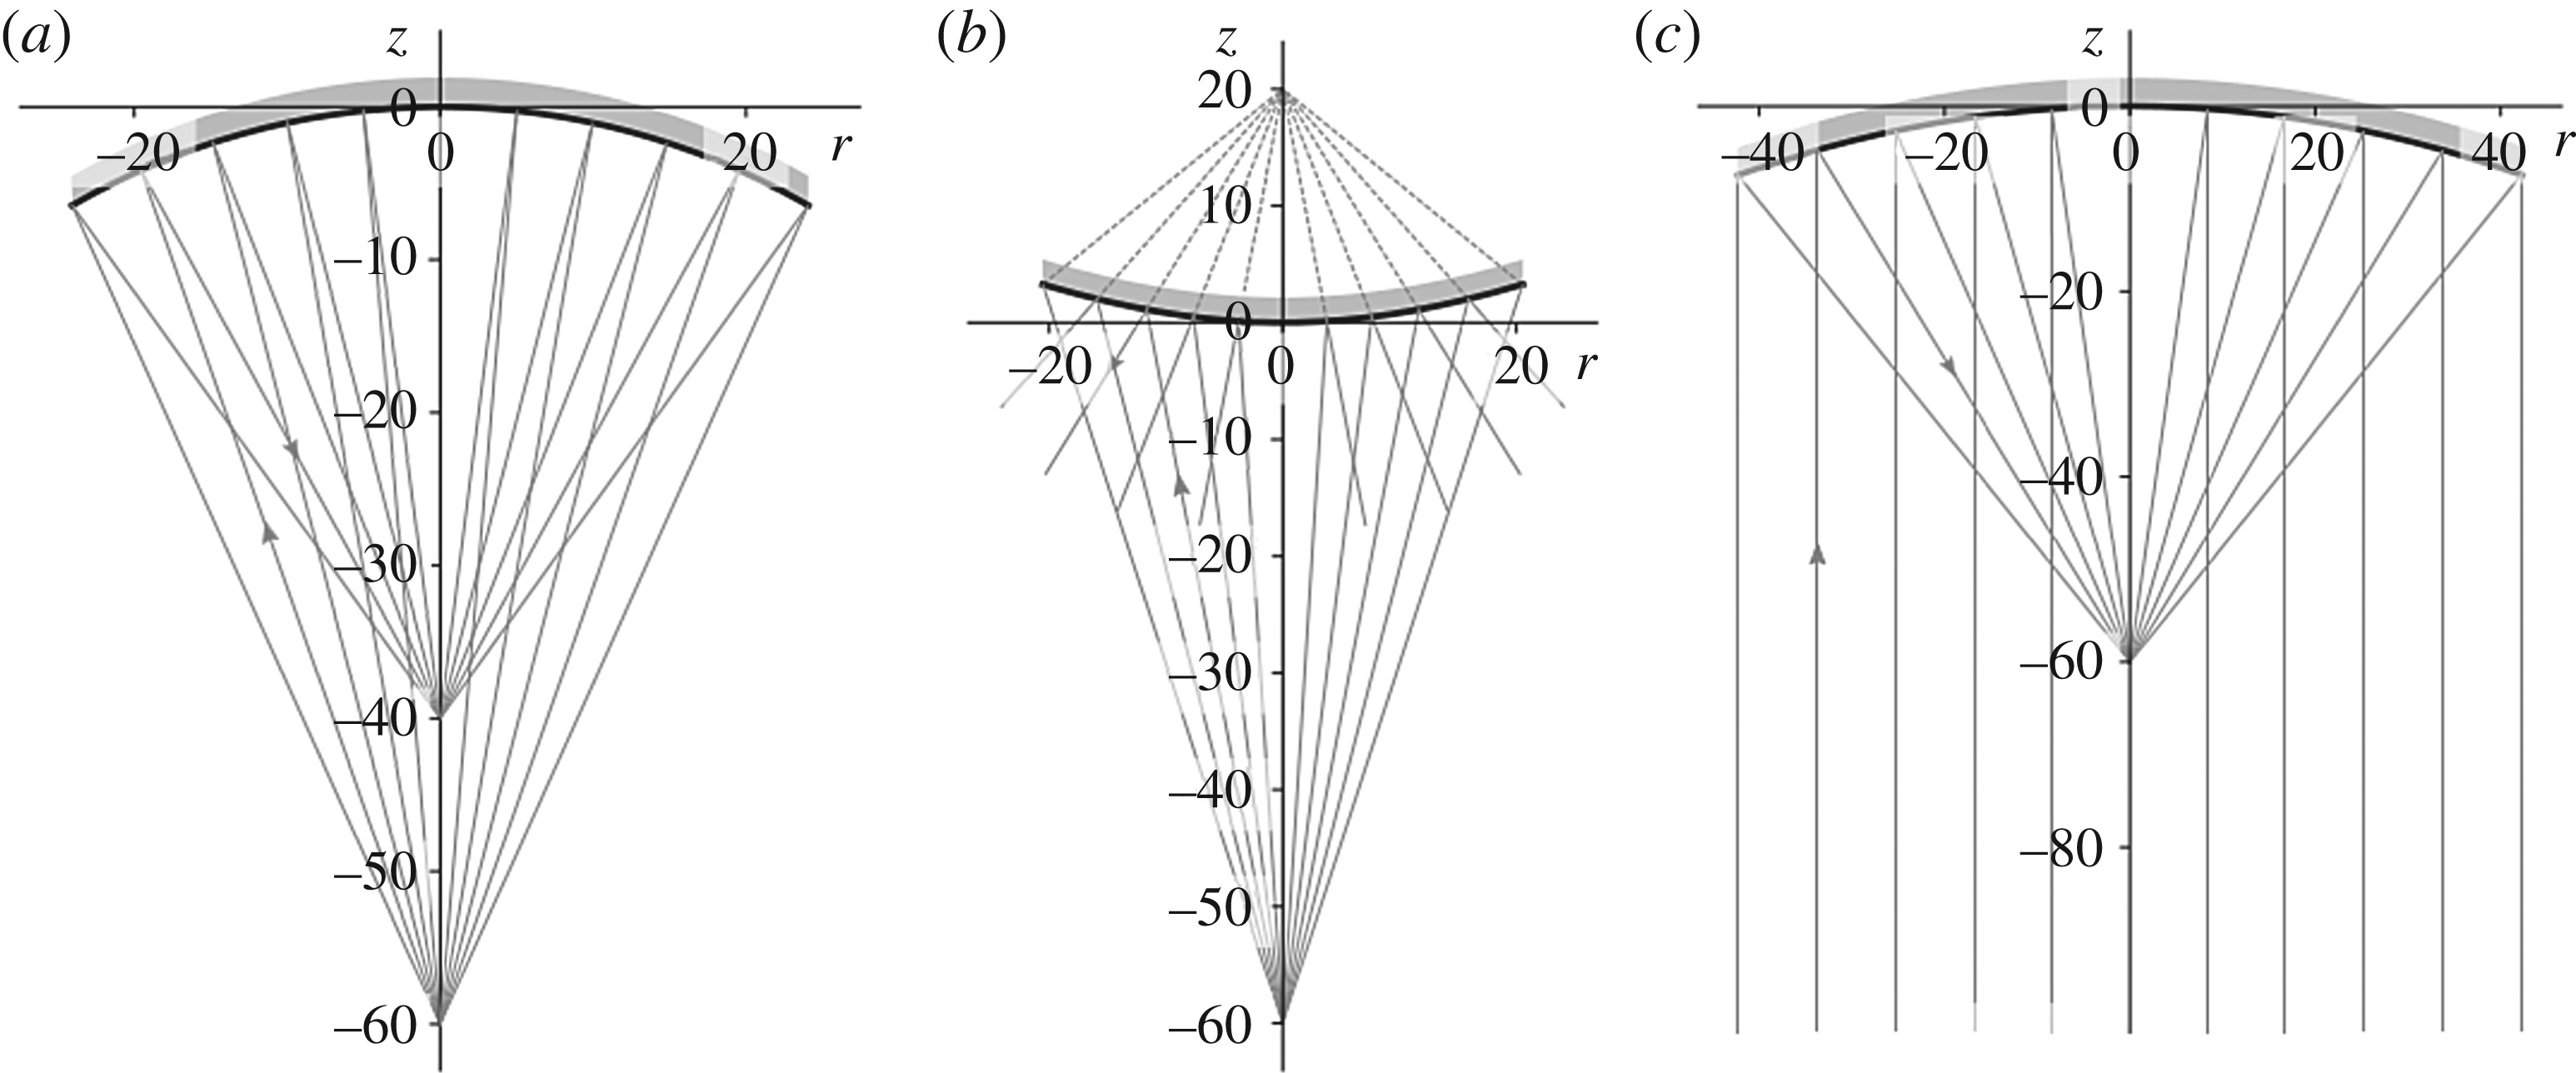 Explicit Cartesian Oval As A Superconic Surface For